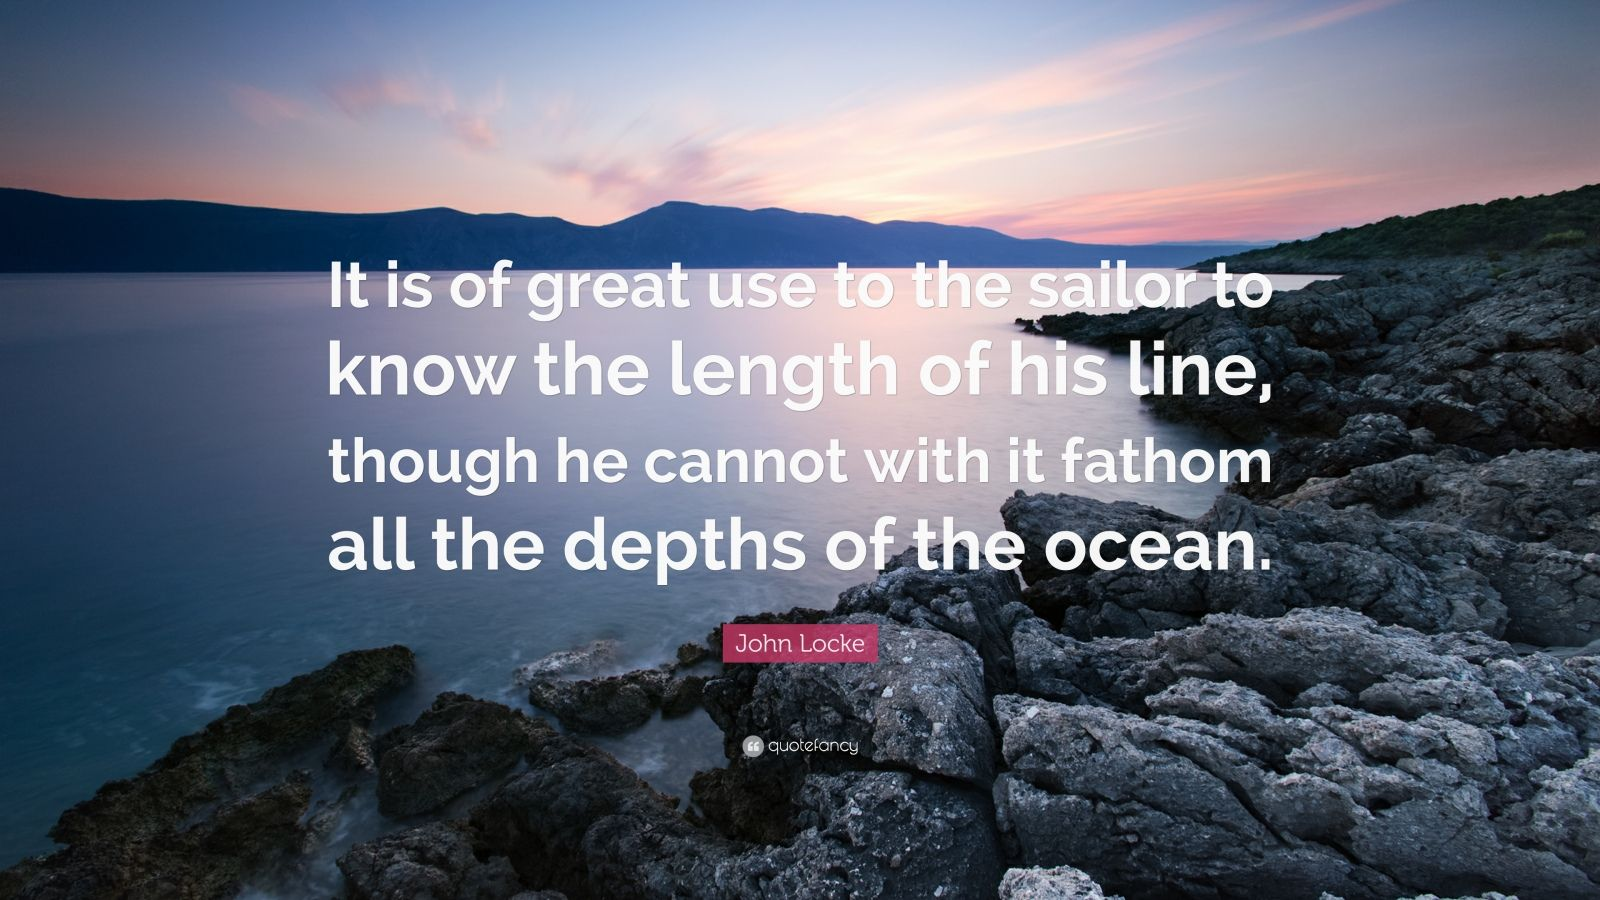 """John Locke Quote: """"It is of great use to the sailor to know the length of his line, though he cannot with it fathom all the depths of the ocean."""""""